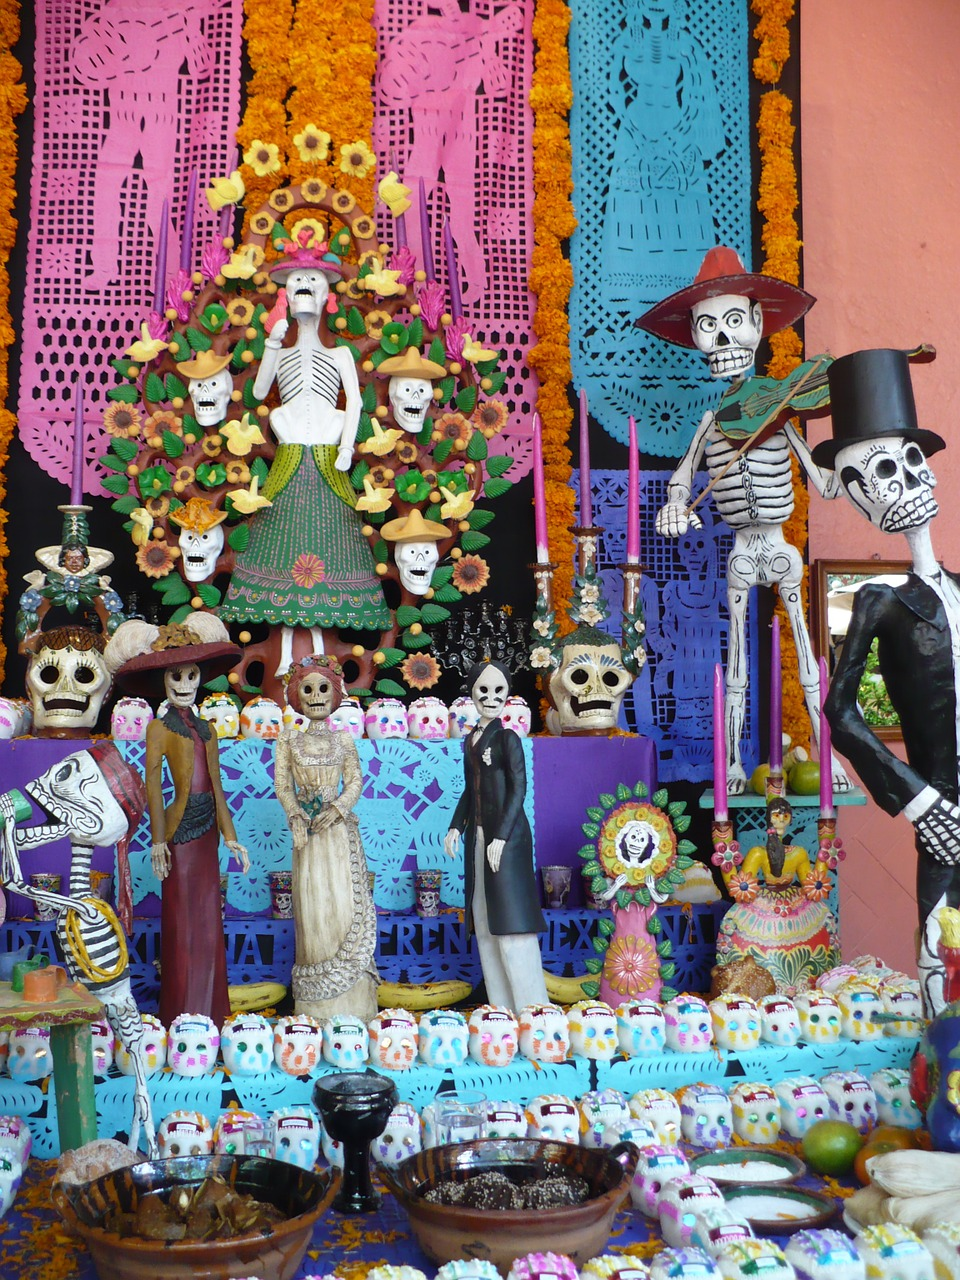 Dia De Los Muertos (Day of the Dead) Celebration on Saturday, November 5, 2016